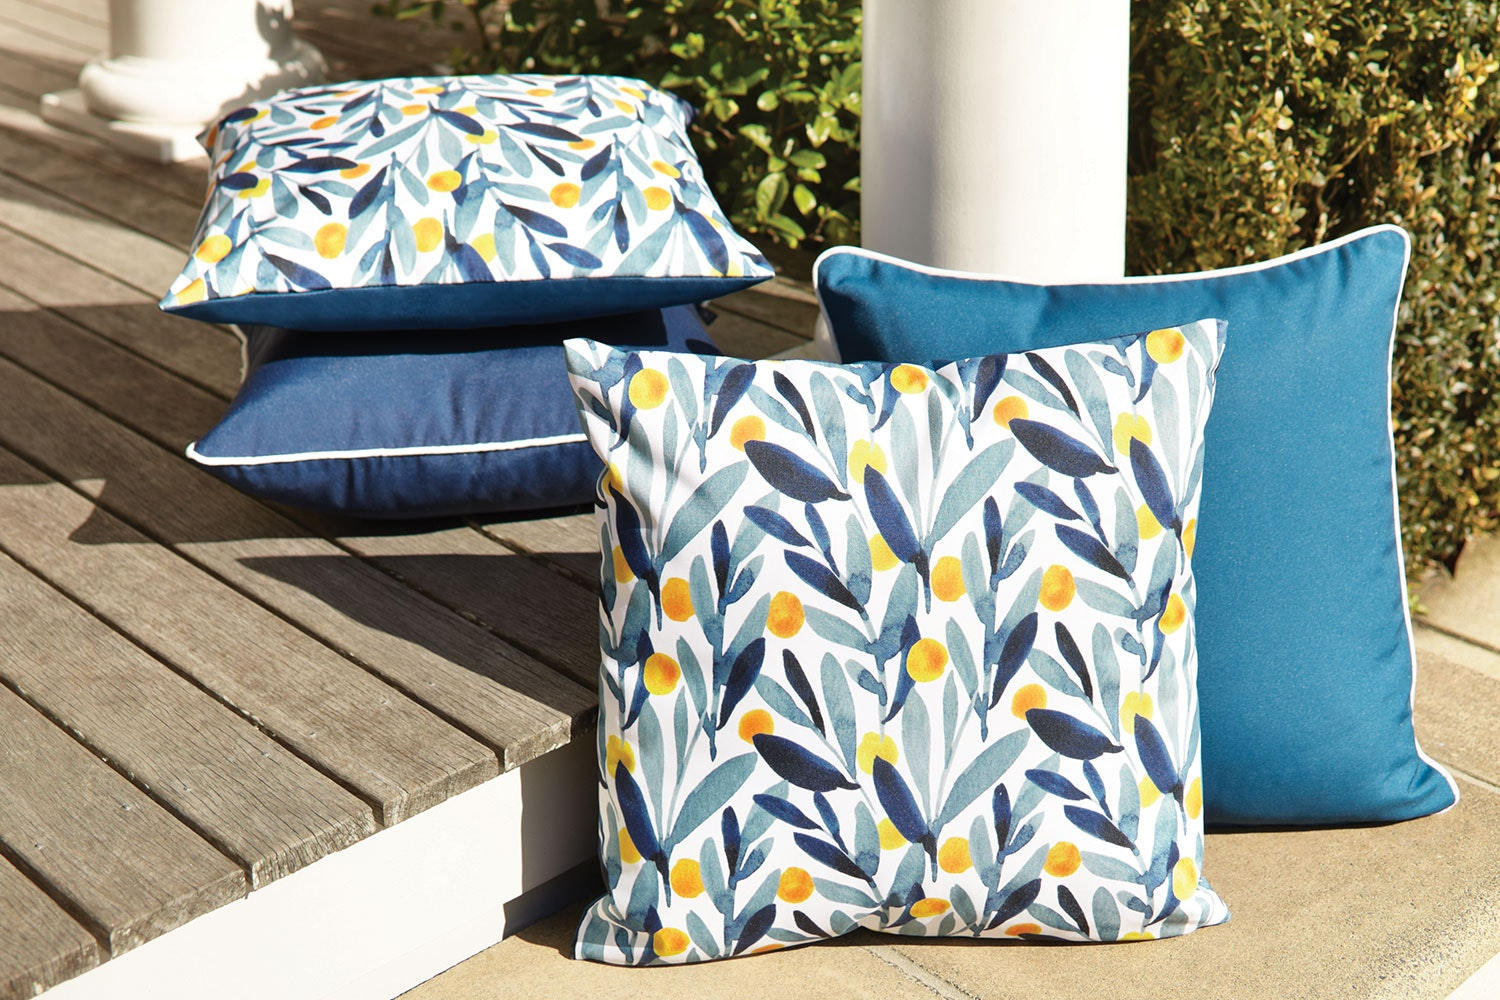 Amalfi Outdoor Cushion by Rapee